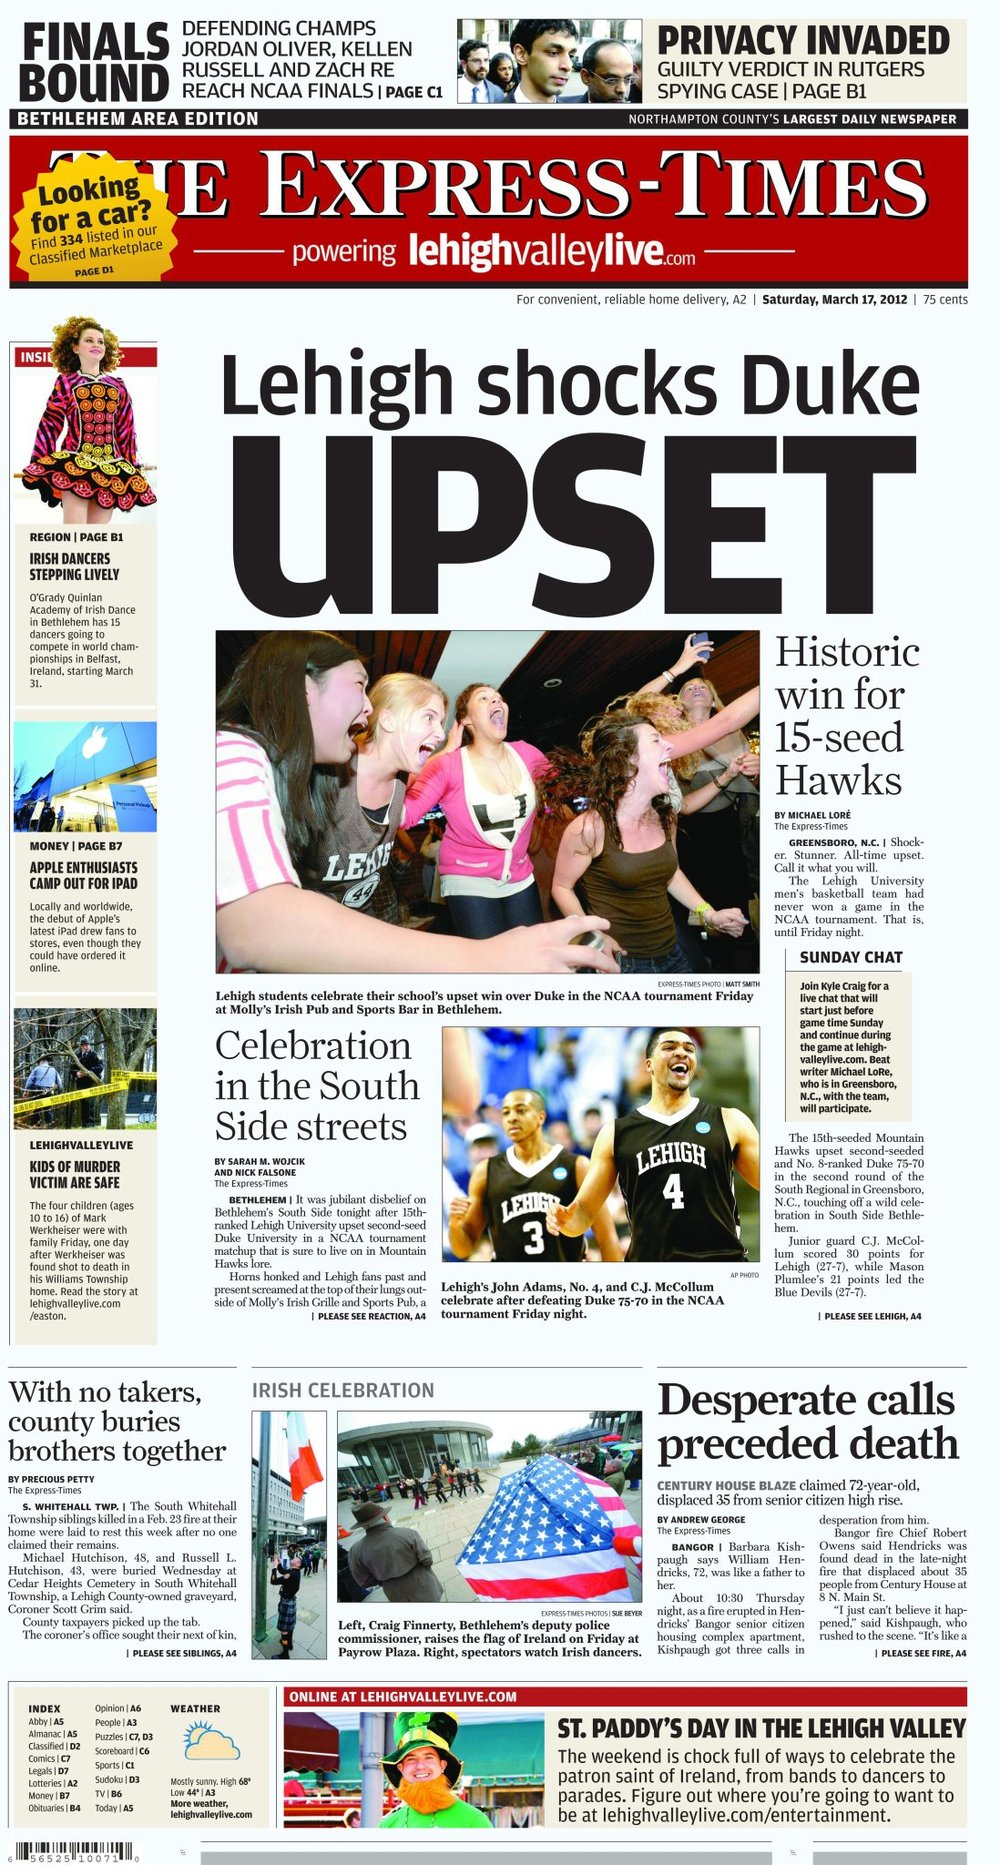 The Express-Times, March 17th, 2012. Lehigh University students celebrate as the men's basketball team upsets Duke University in the NCCA tournament.